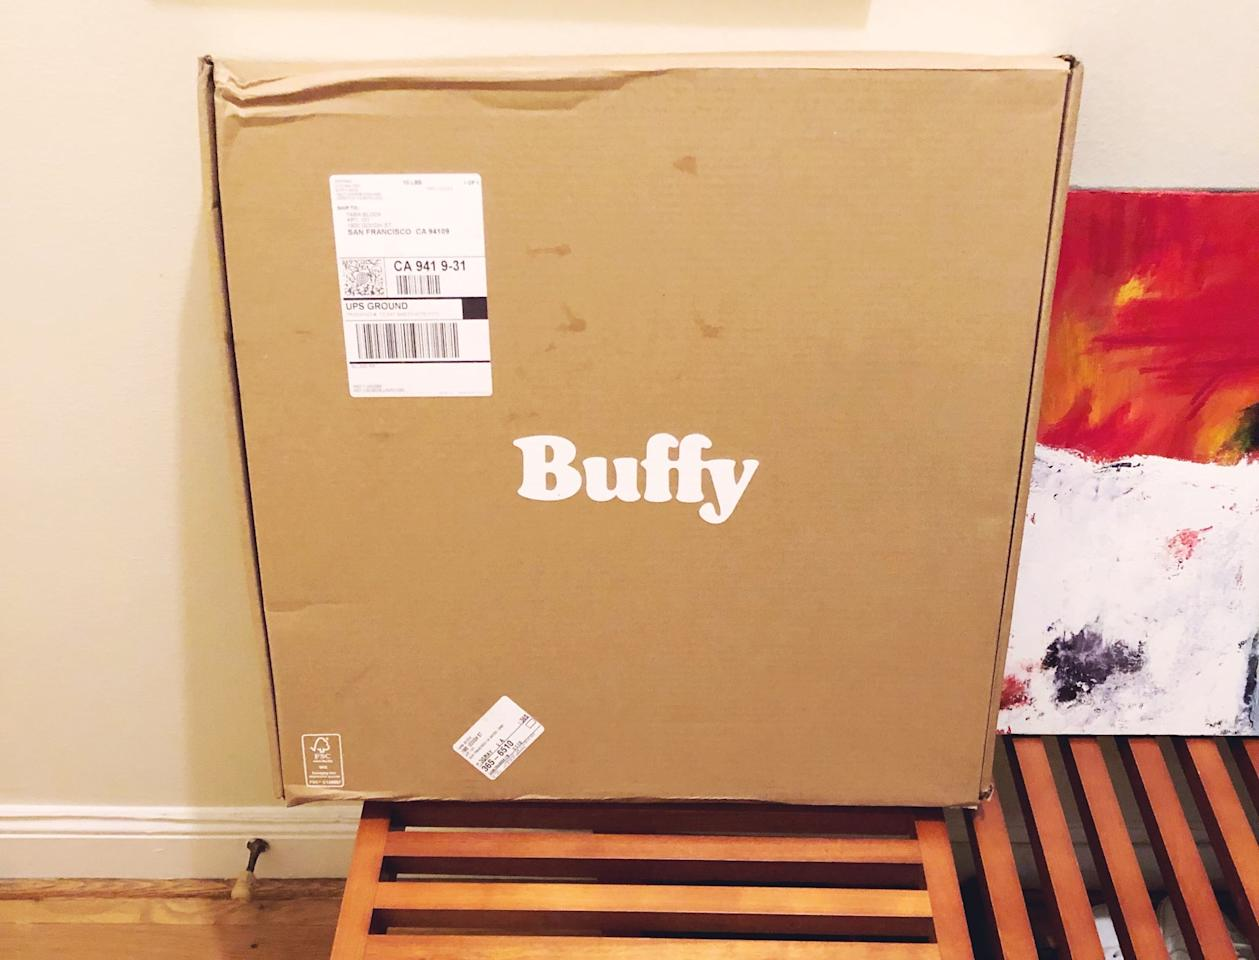 <p>The comforter arrived in an extremely small box. In fact, it was so small, I almost didn't spot it in the pile of packages in my apartment building's lobby. </p>